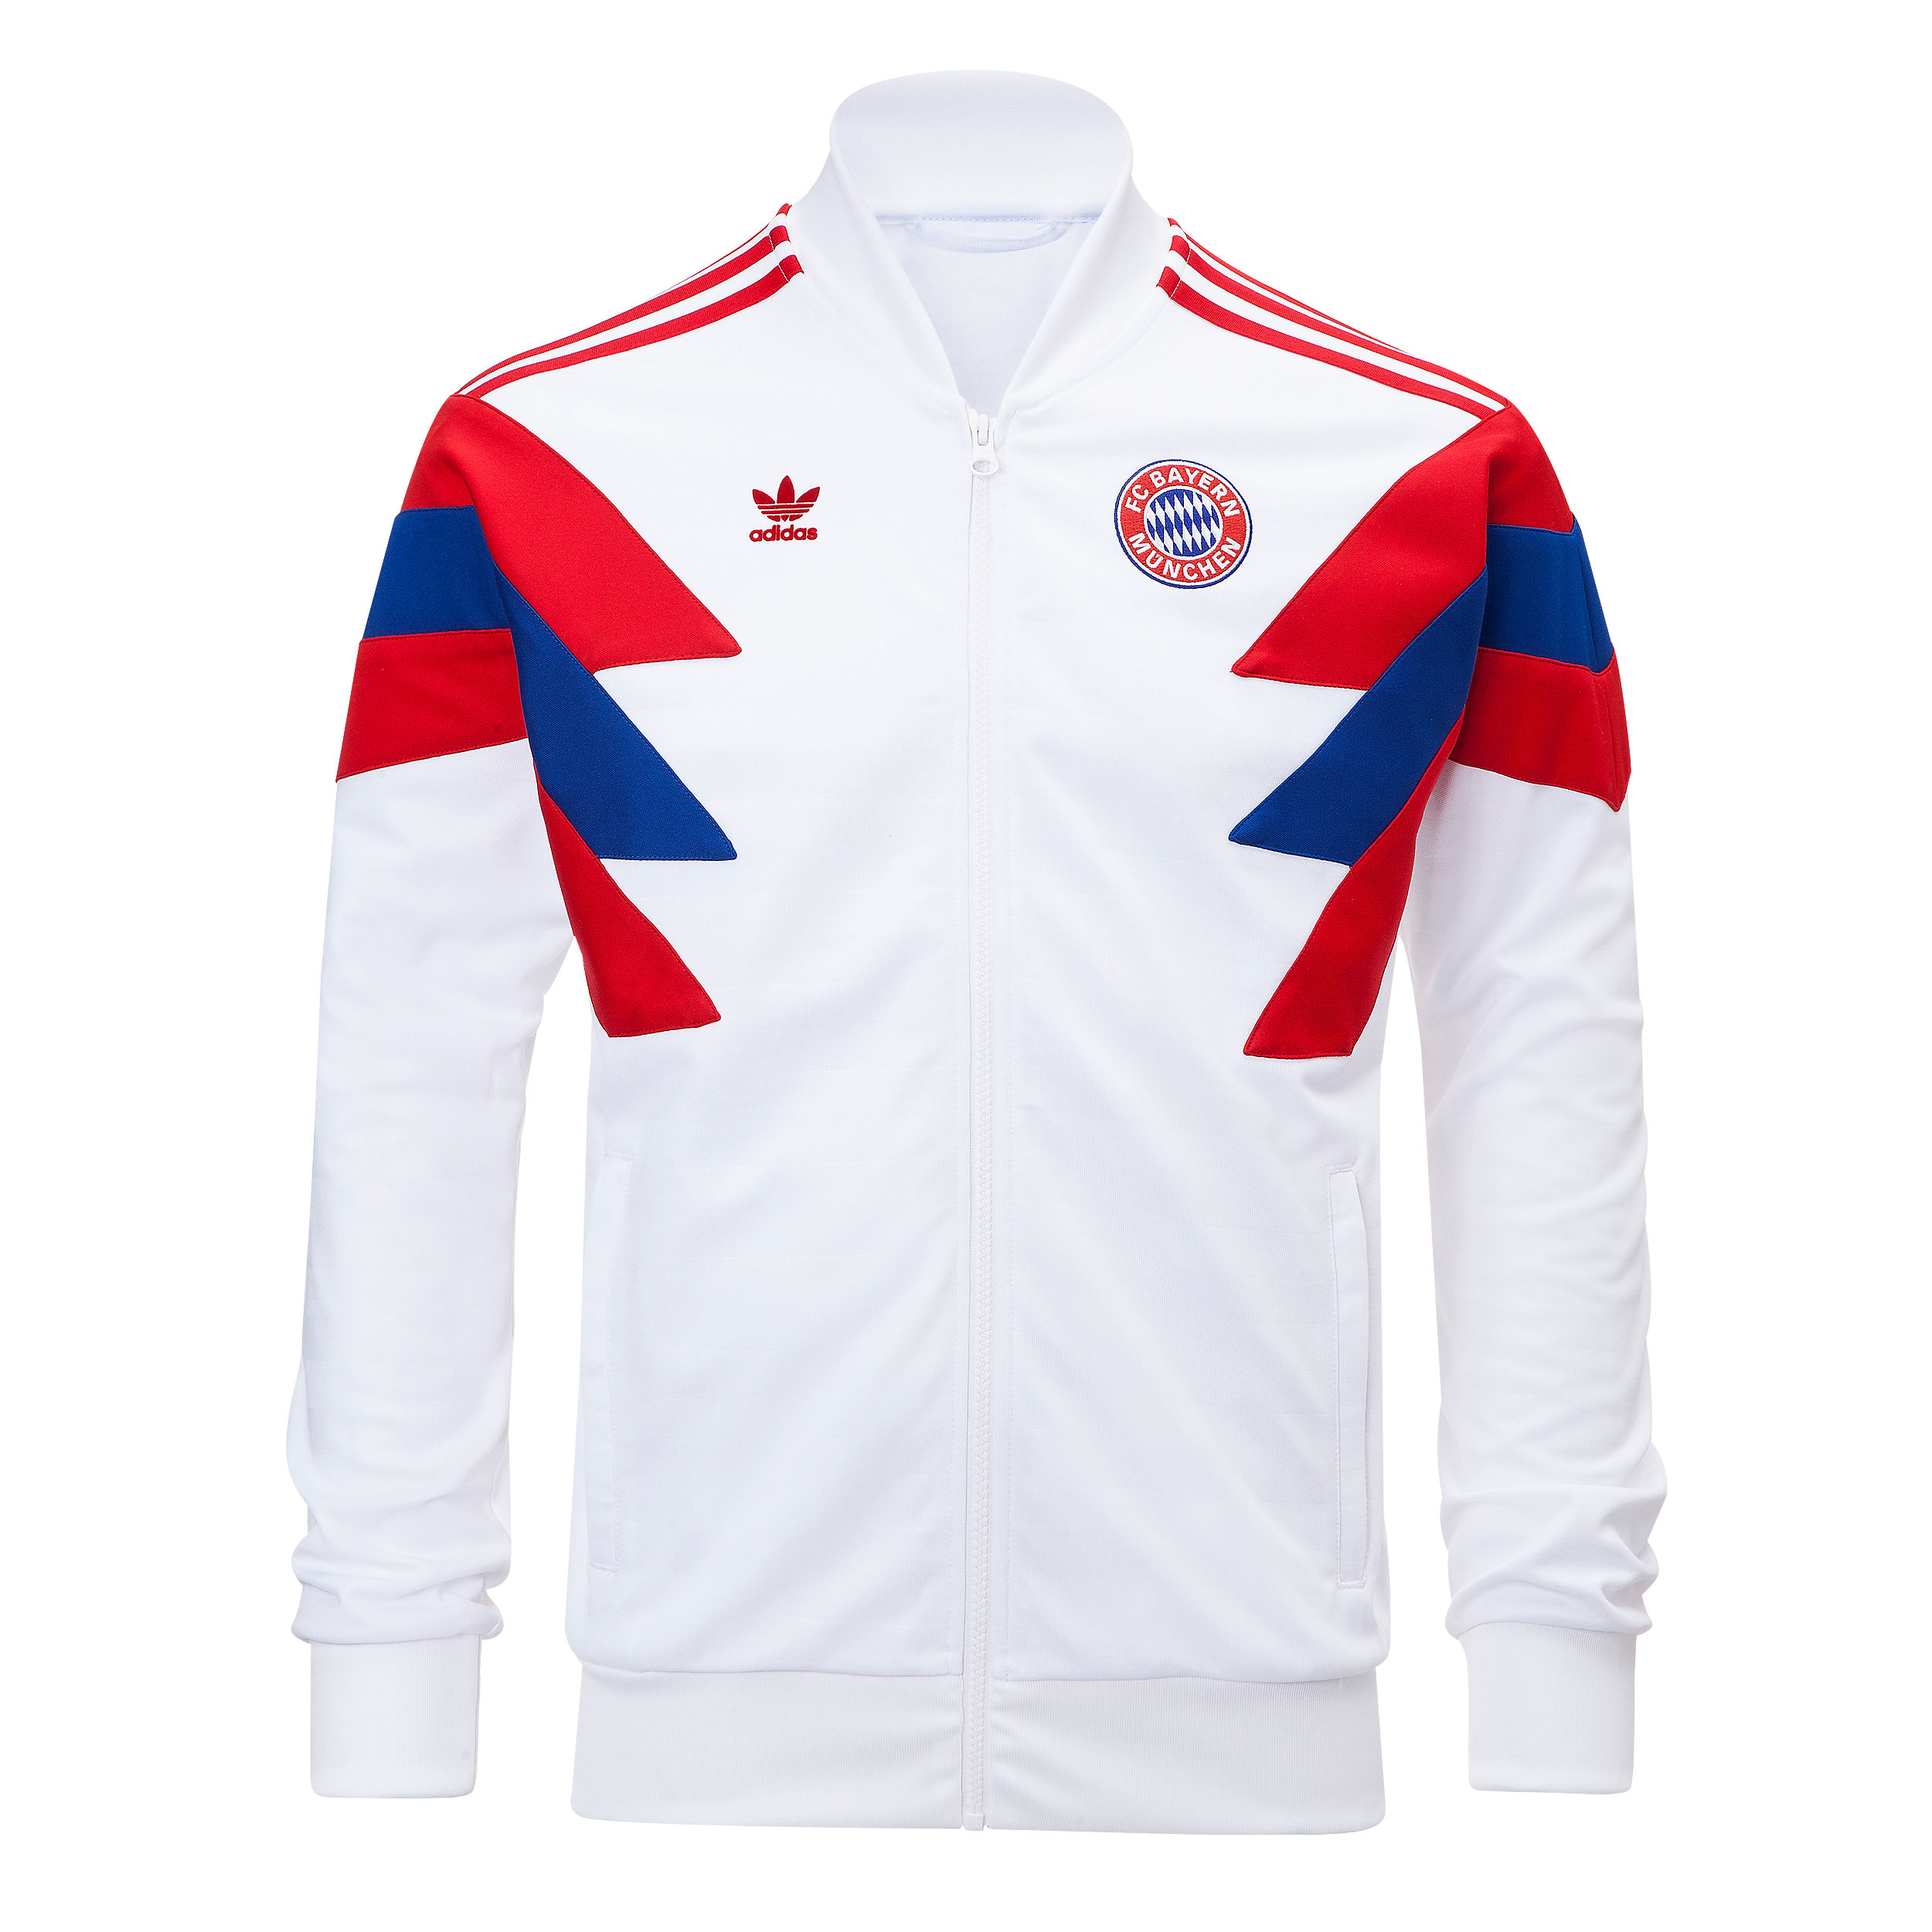 Adidas Originals Track top official FC Bayern Online Store